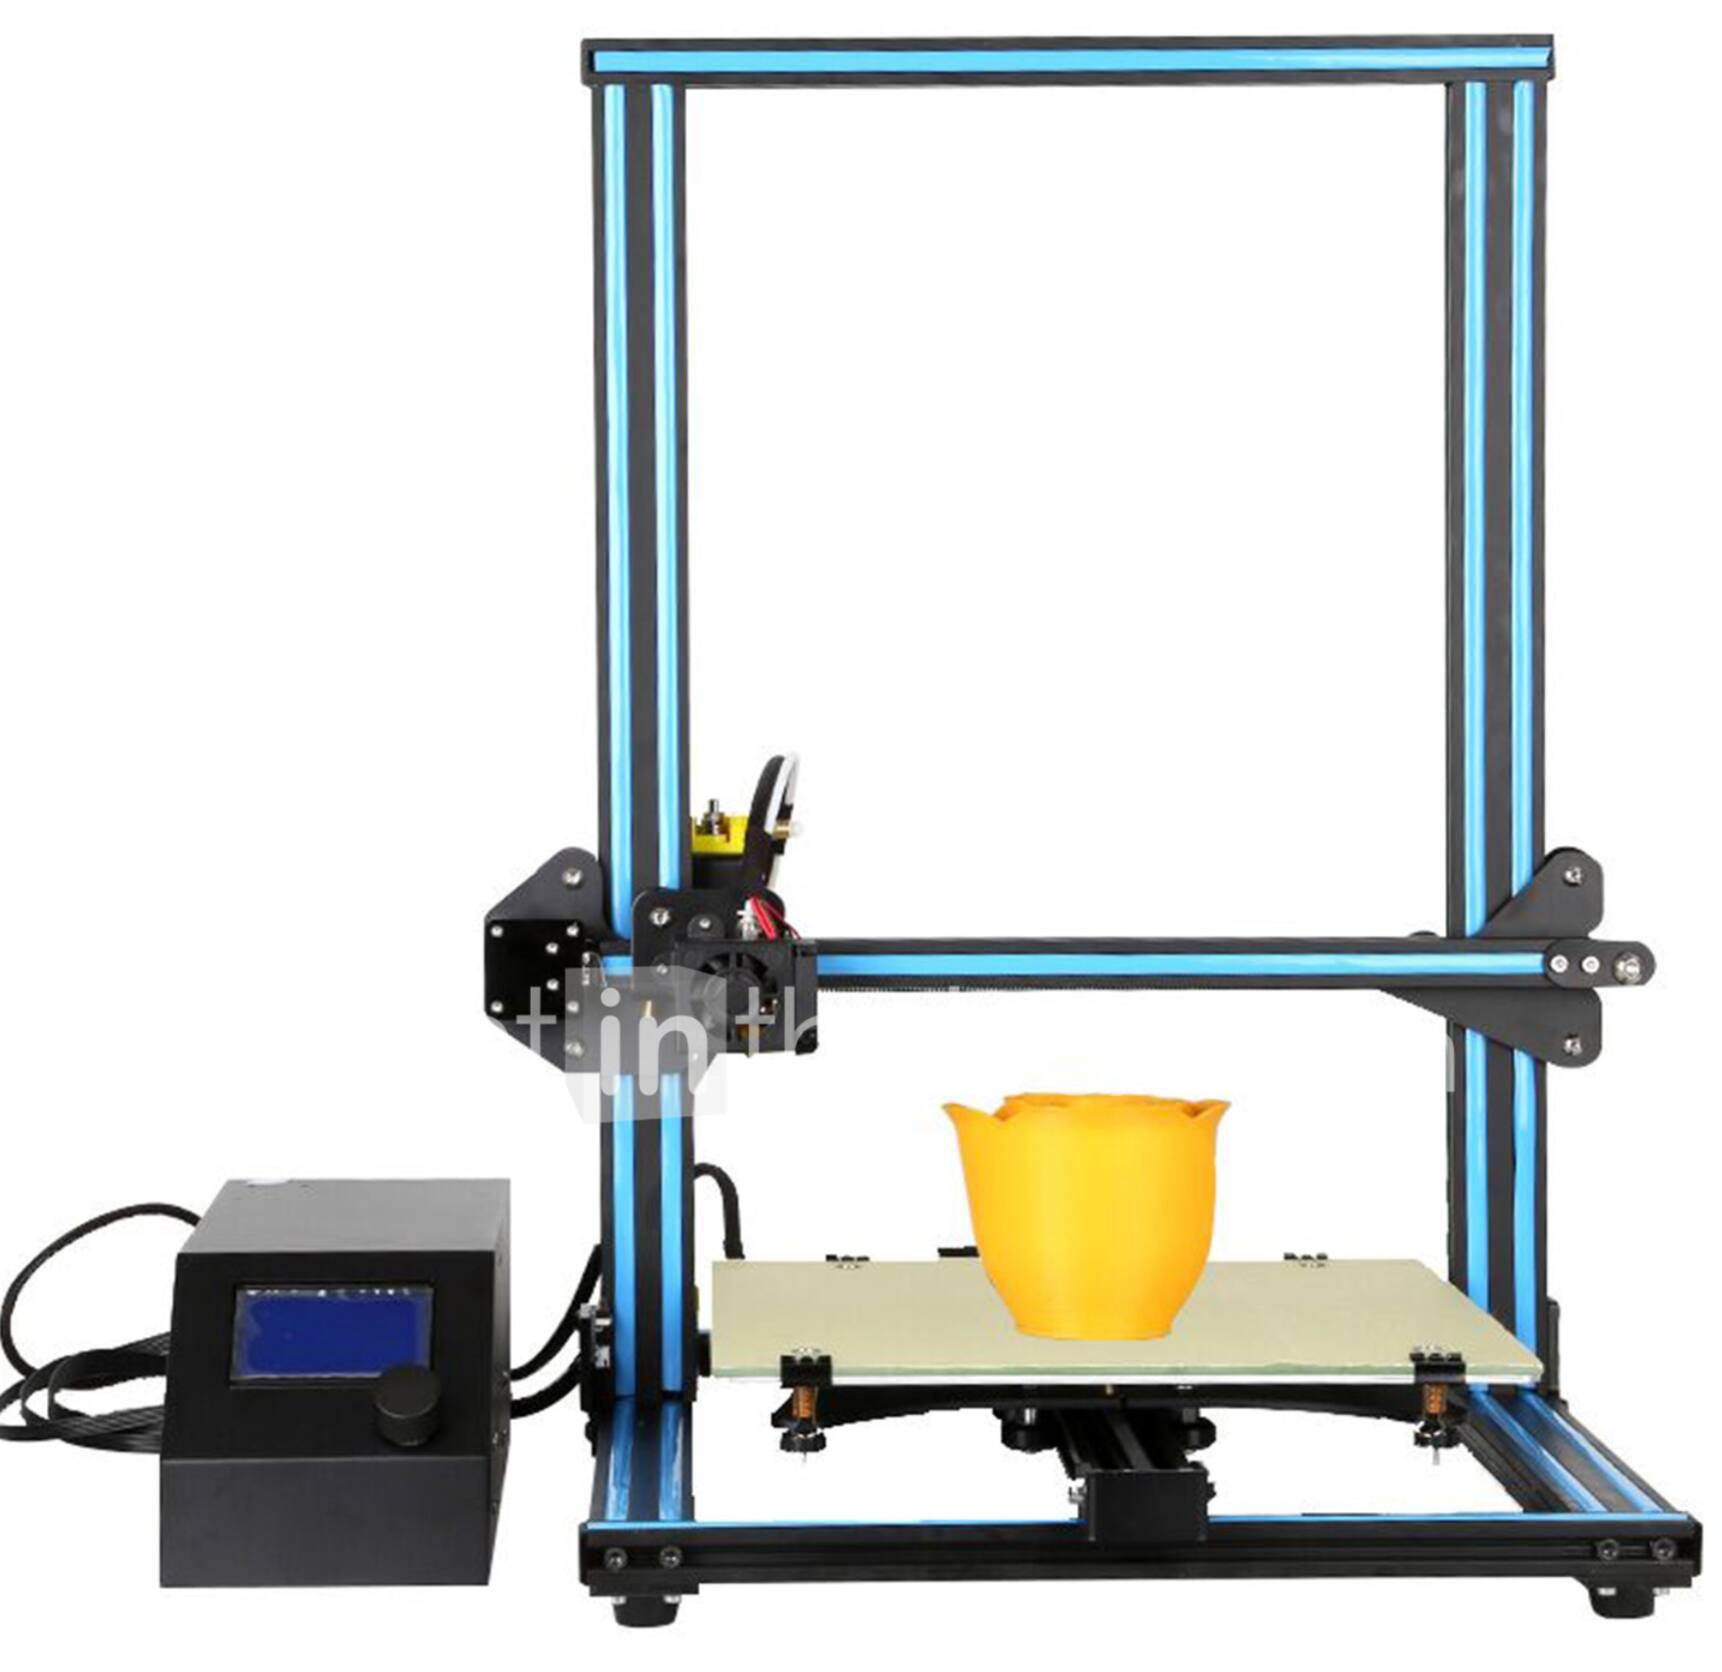 Creality 10 3D Large Size Desktop DIY Printer LCD Screen Display with SD Card Off-line Printing Function - $357.96